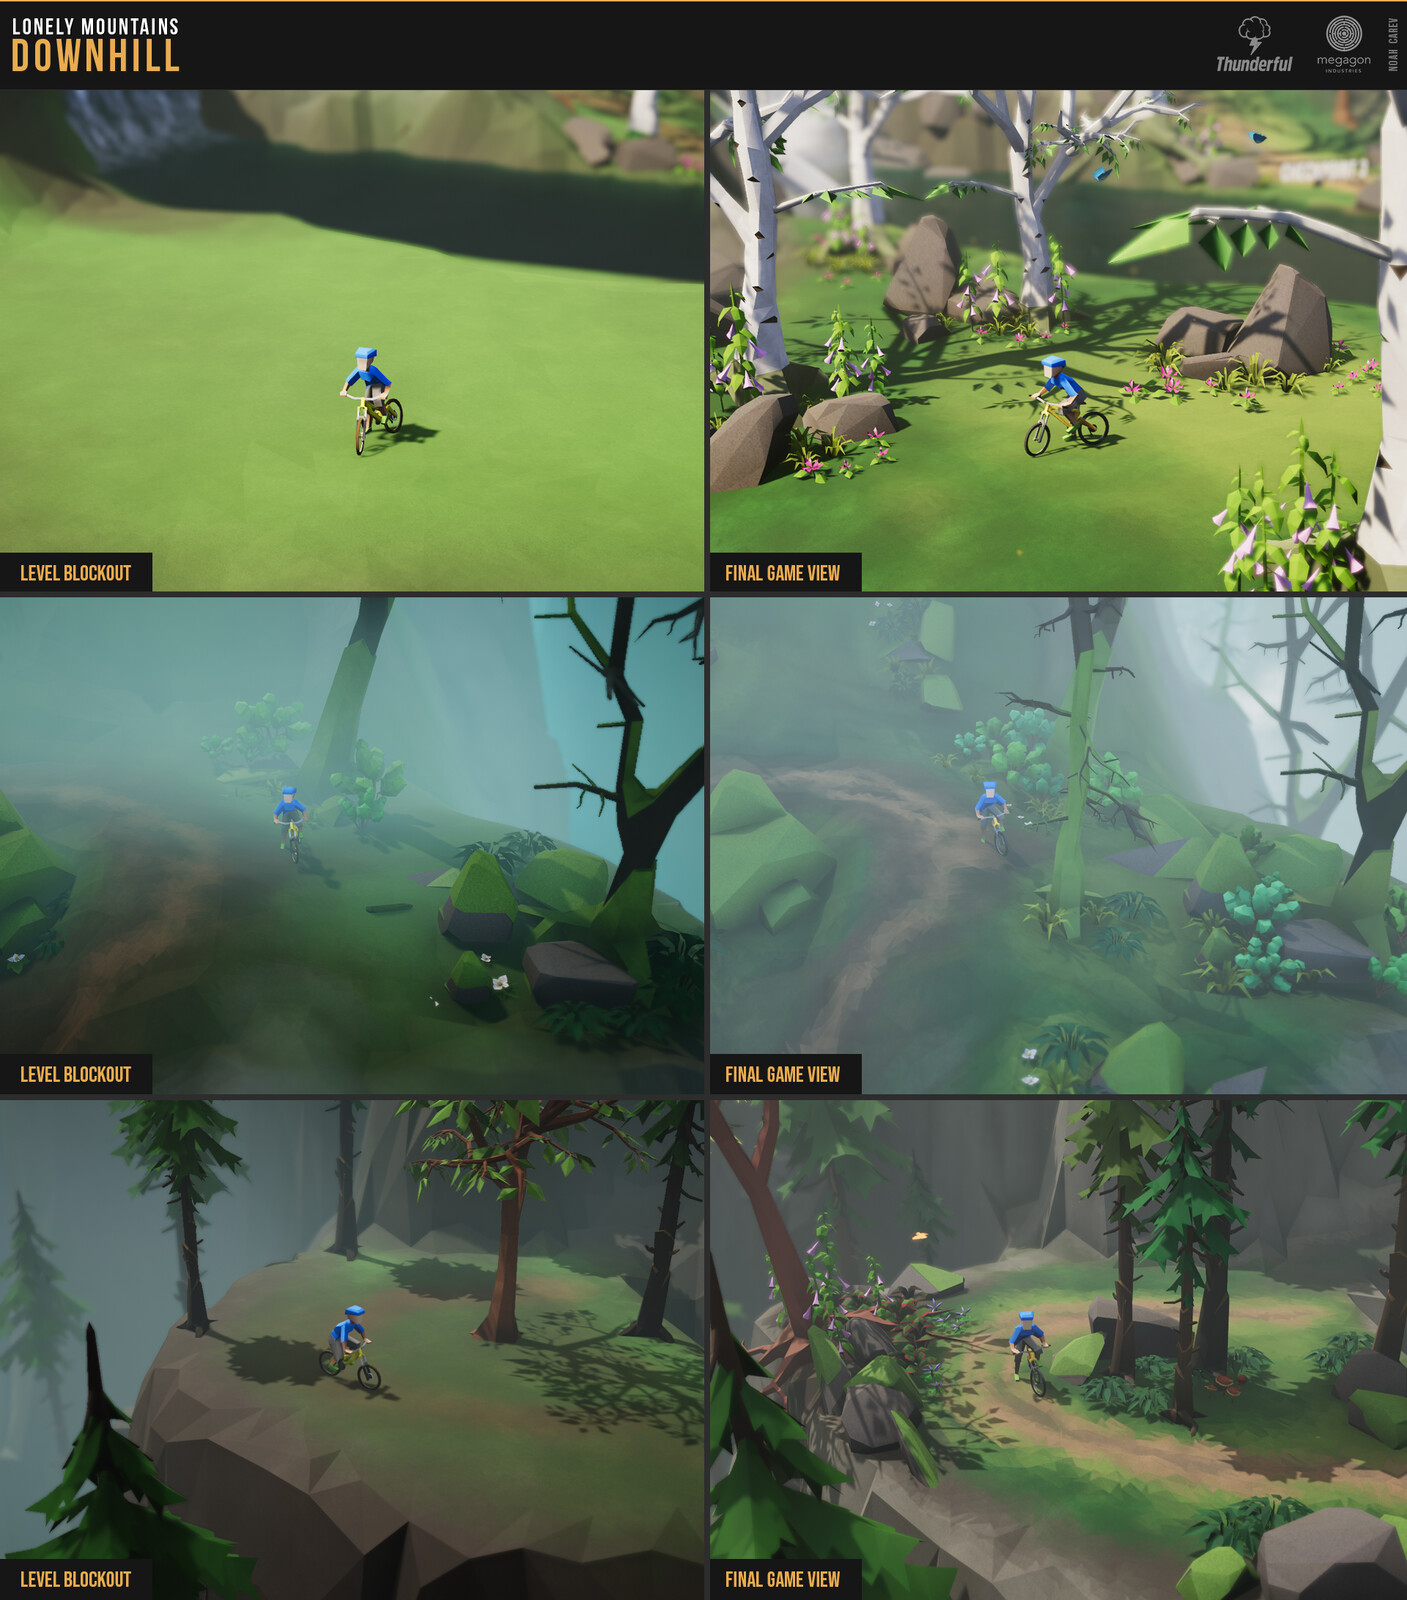 On the left side the rough level design, on the right side the finished trail ingame.